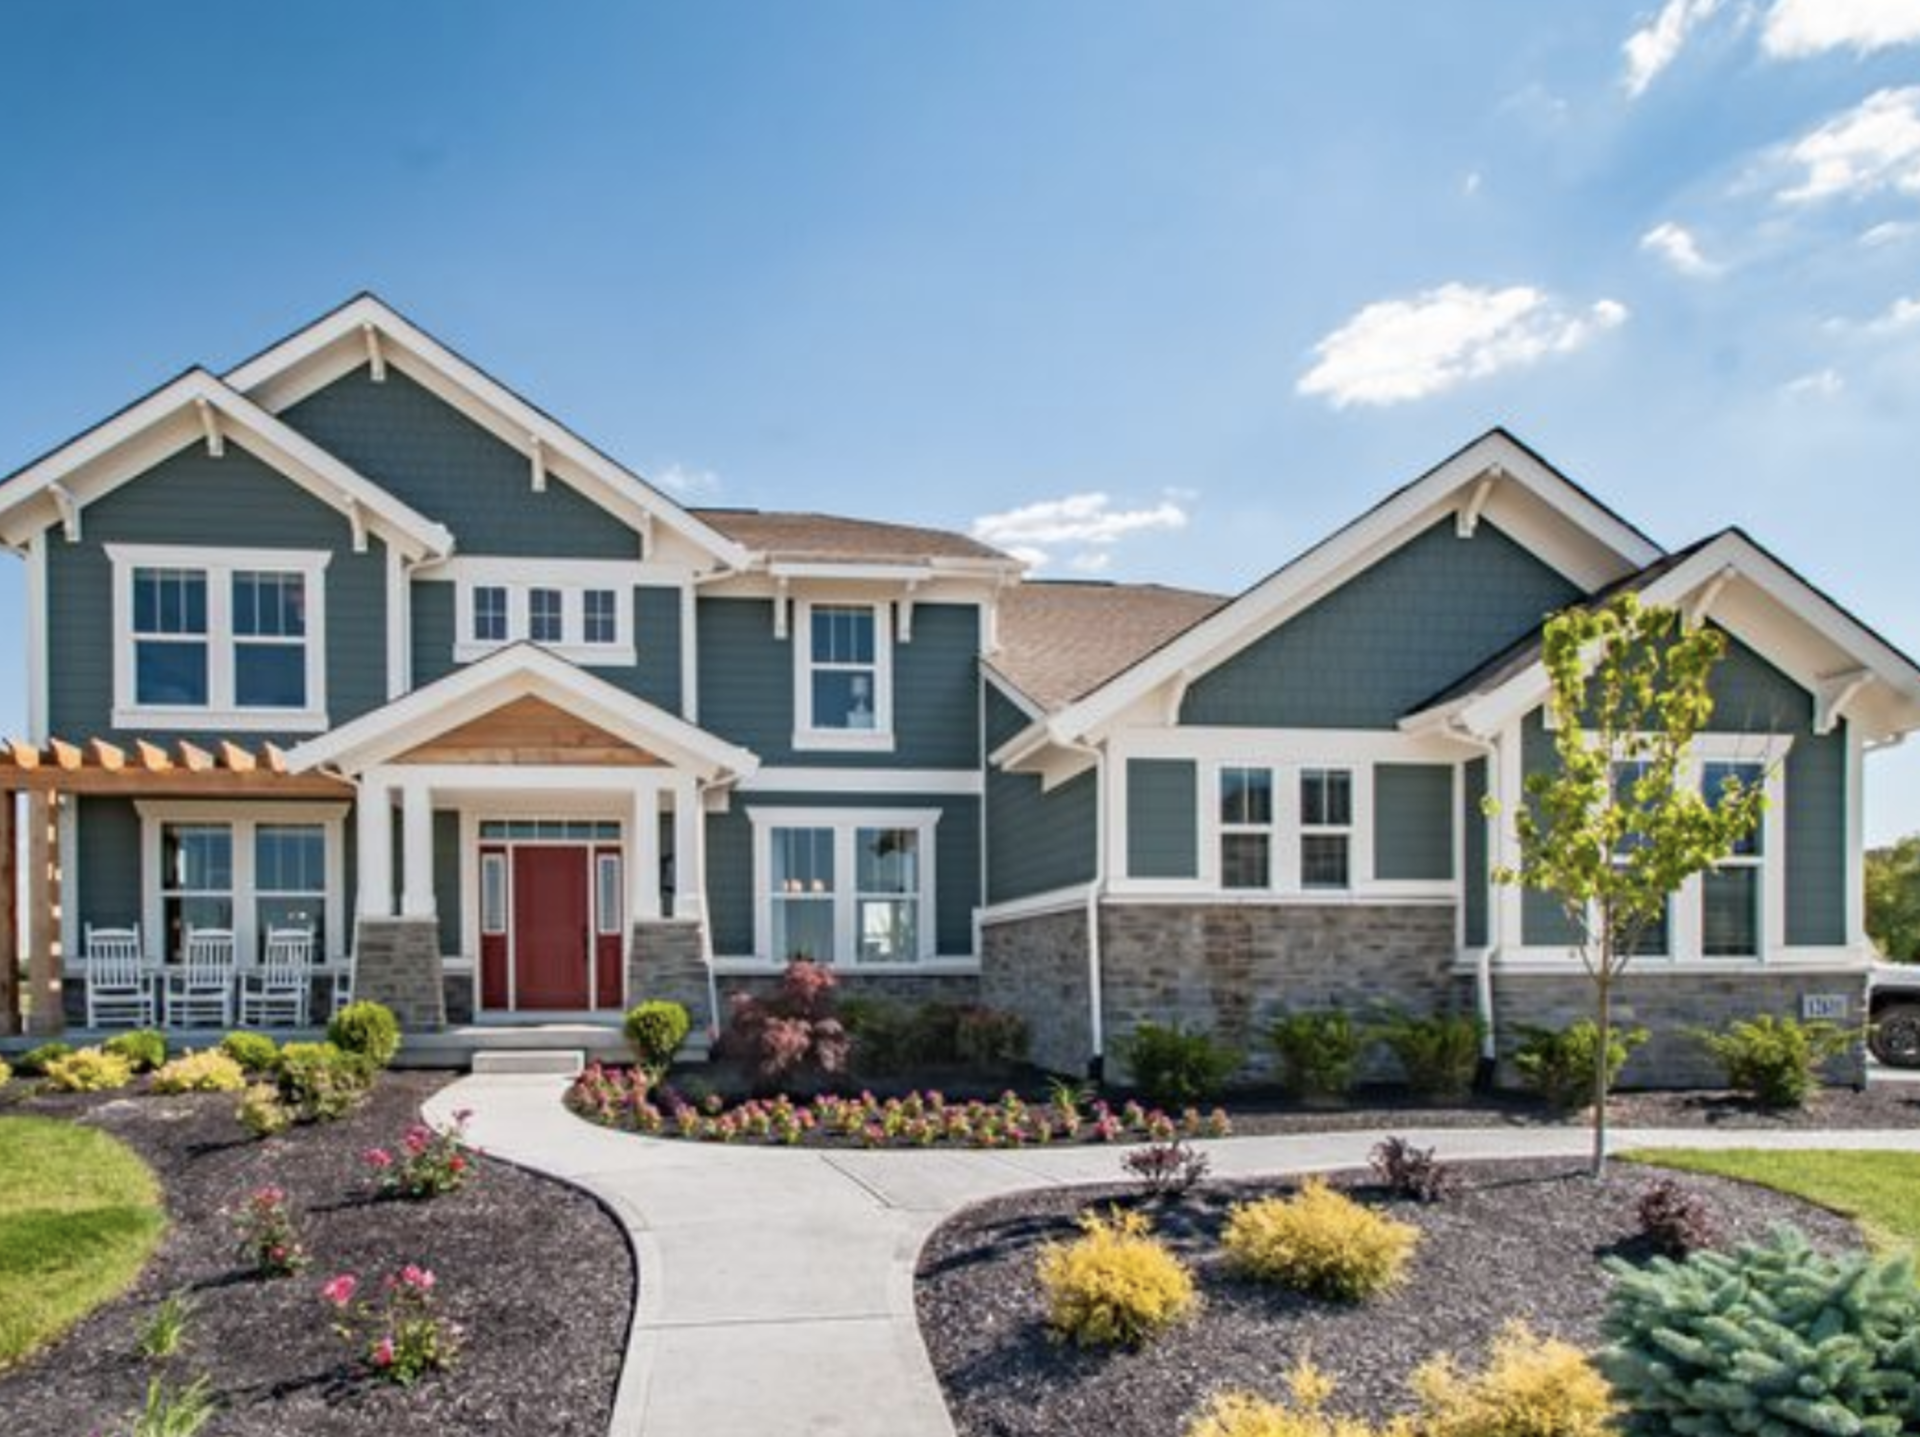 Central Ohio Housing Report – June 2019